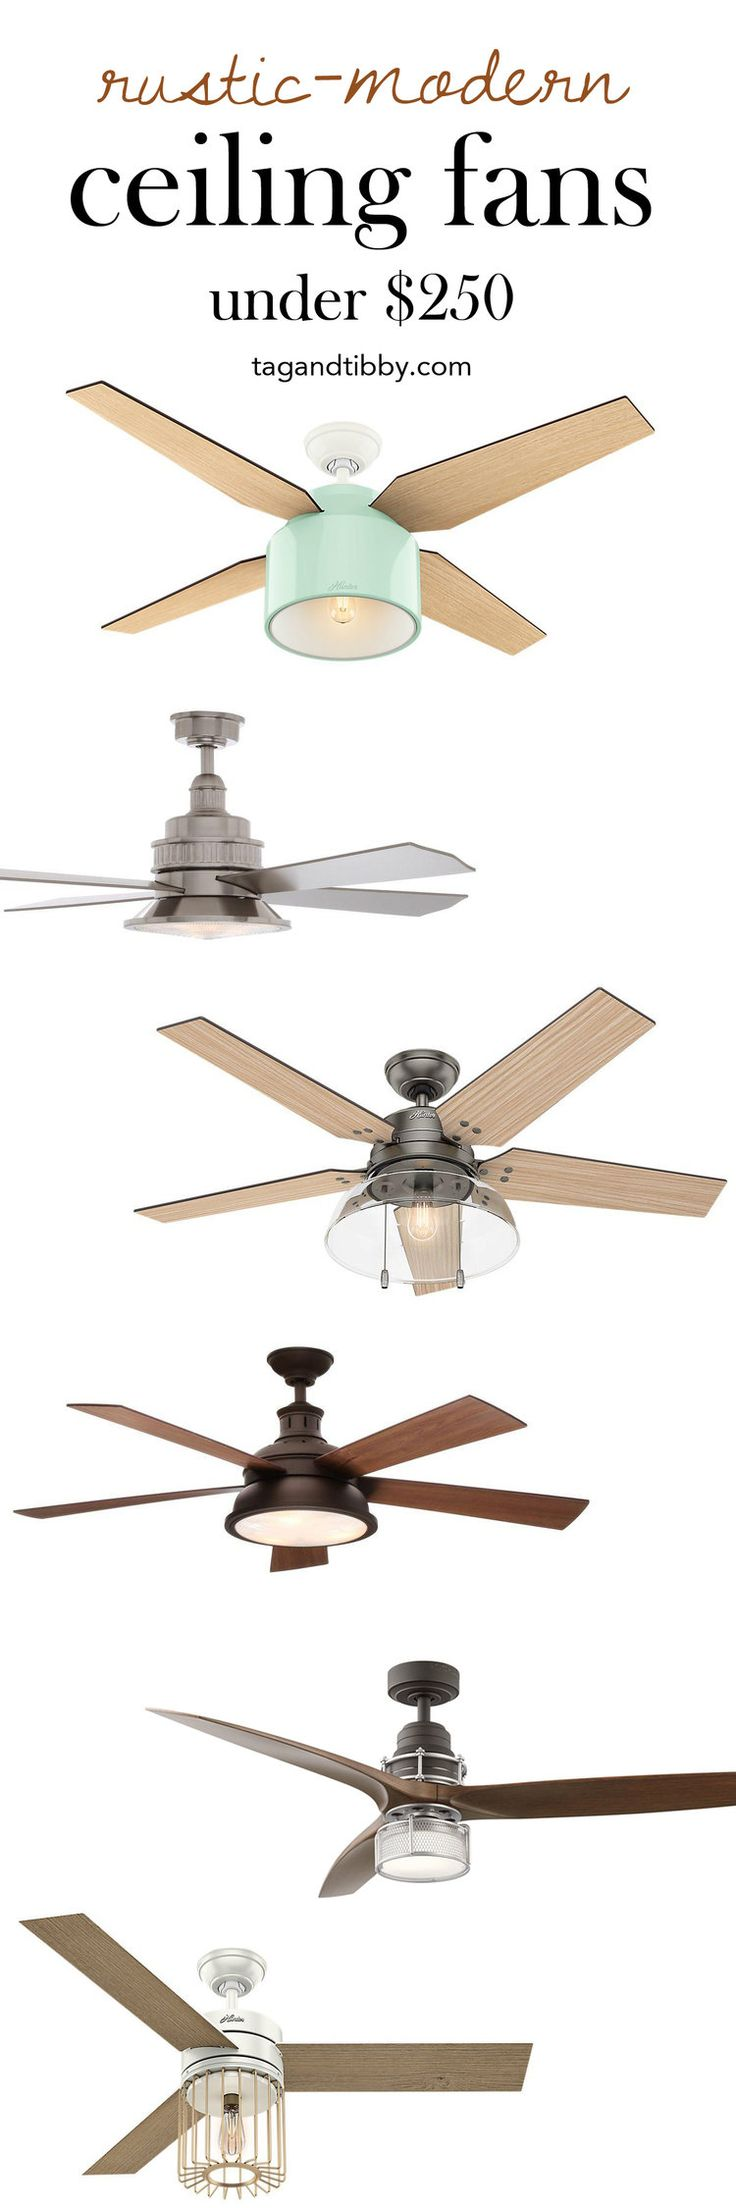 Best 25+ Rustic ceiling fans ideas on Pinterest | Ceiling fan ...